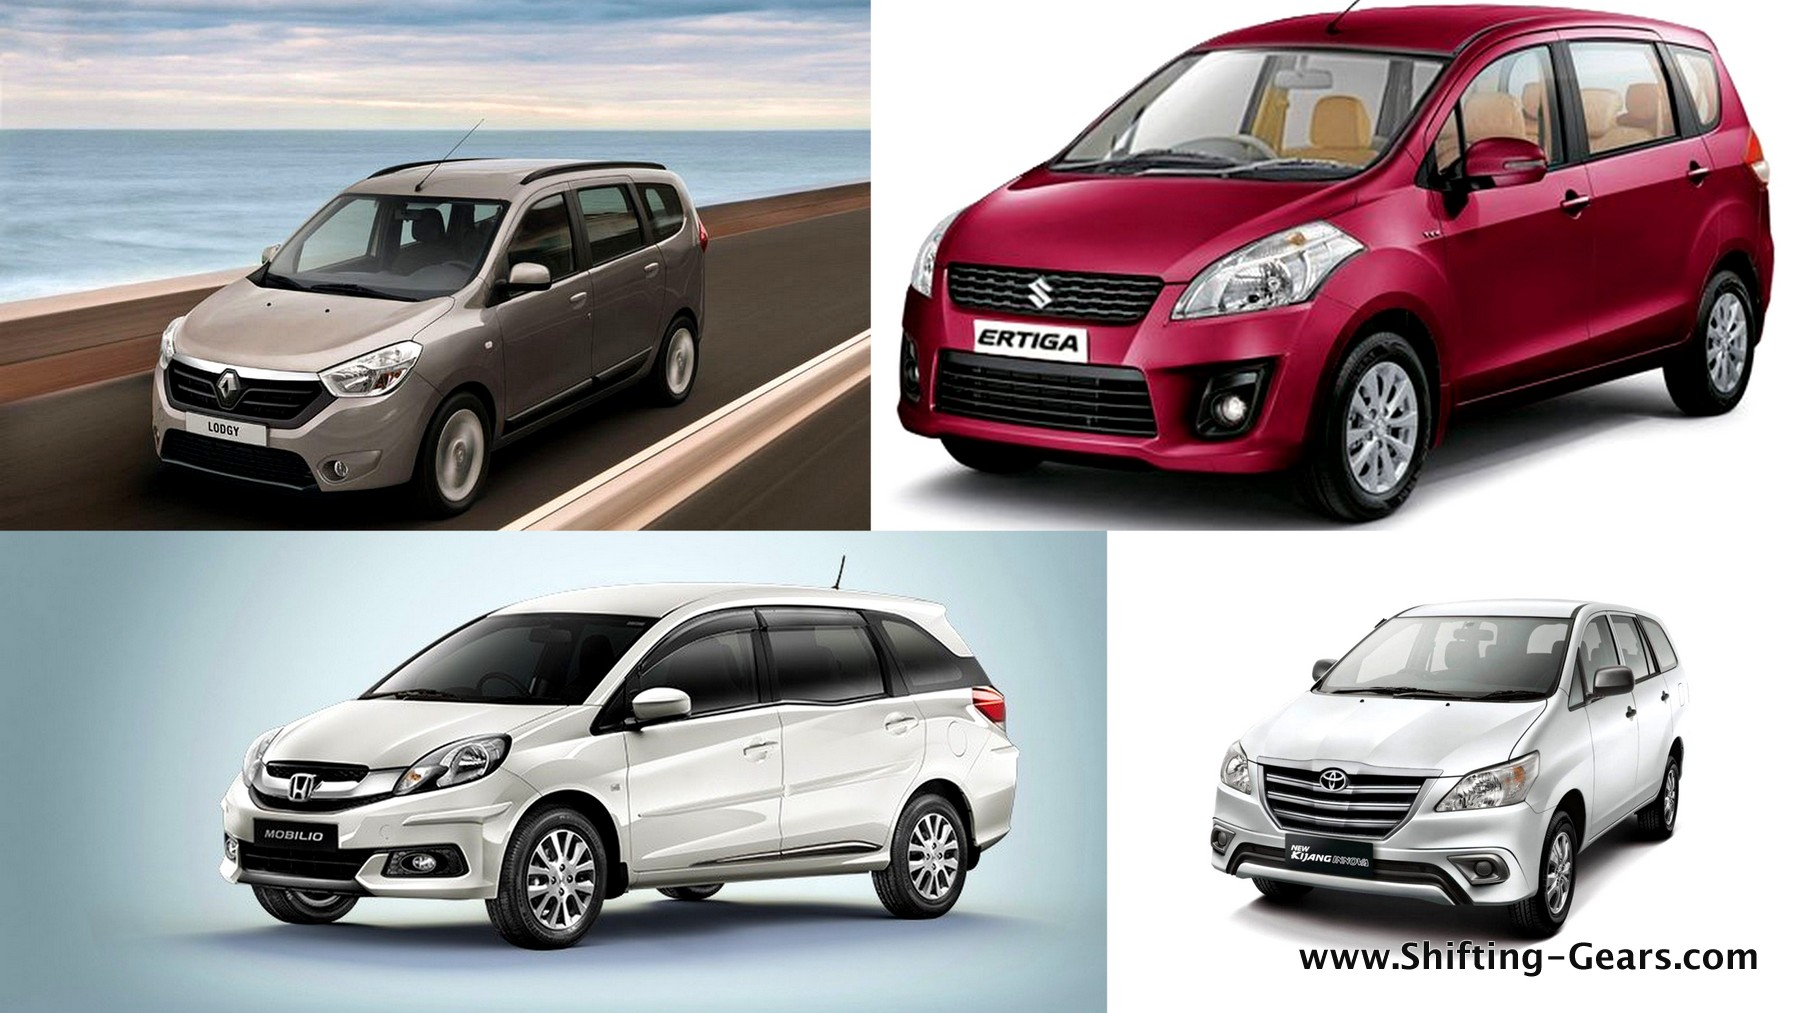 Lodgy is noticeably larger than the Ertiga & Mobilio; but smaller than the Innova